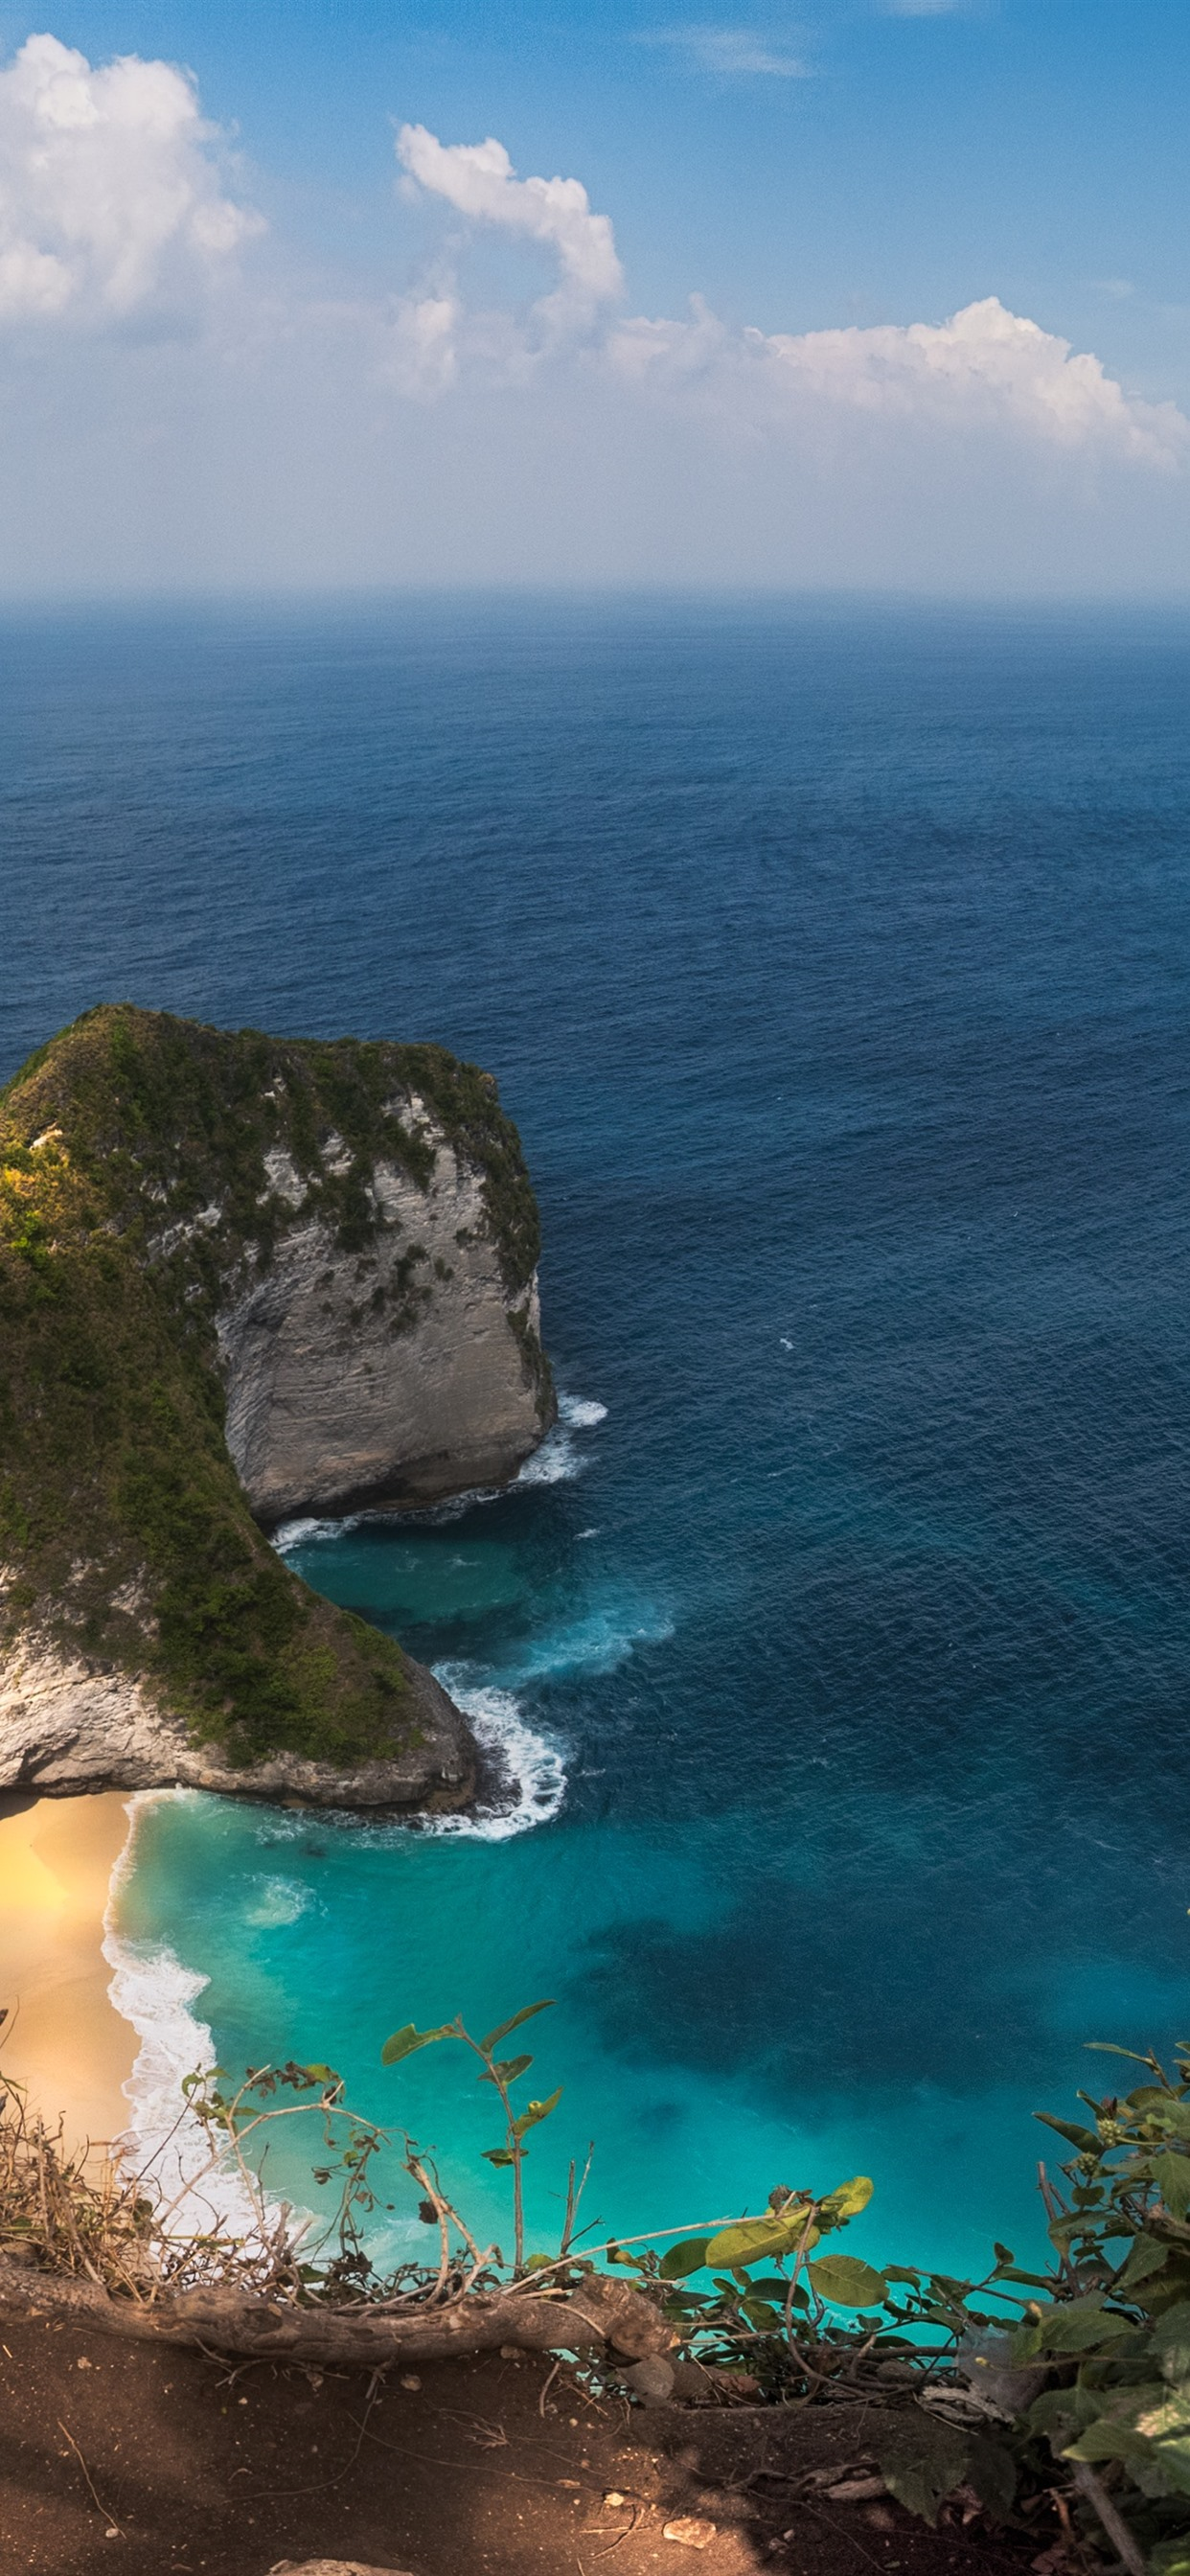 Nusa Penida Island Sea Beach 1242x2688 Iphone 11 Pro Xs Max Wallpaper Background Picture Image